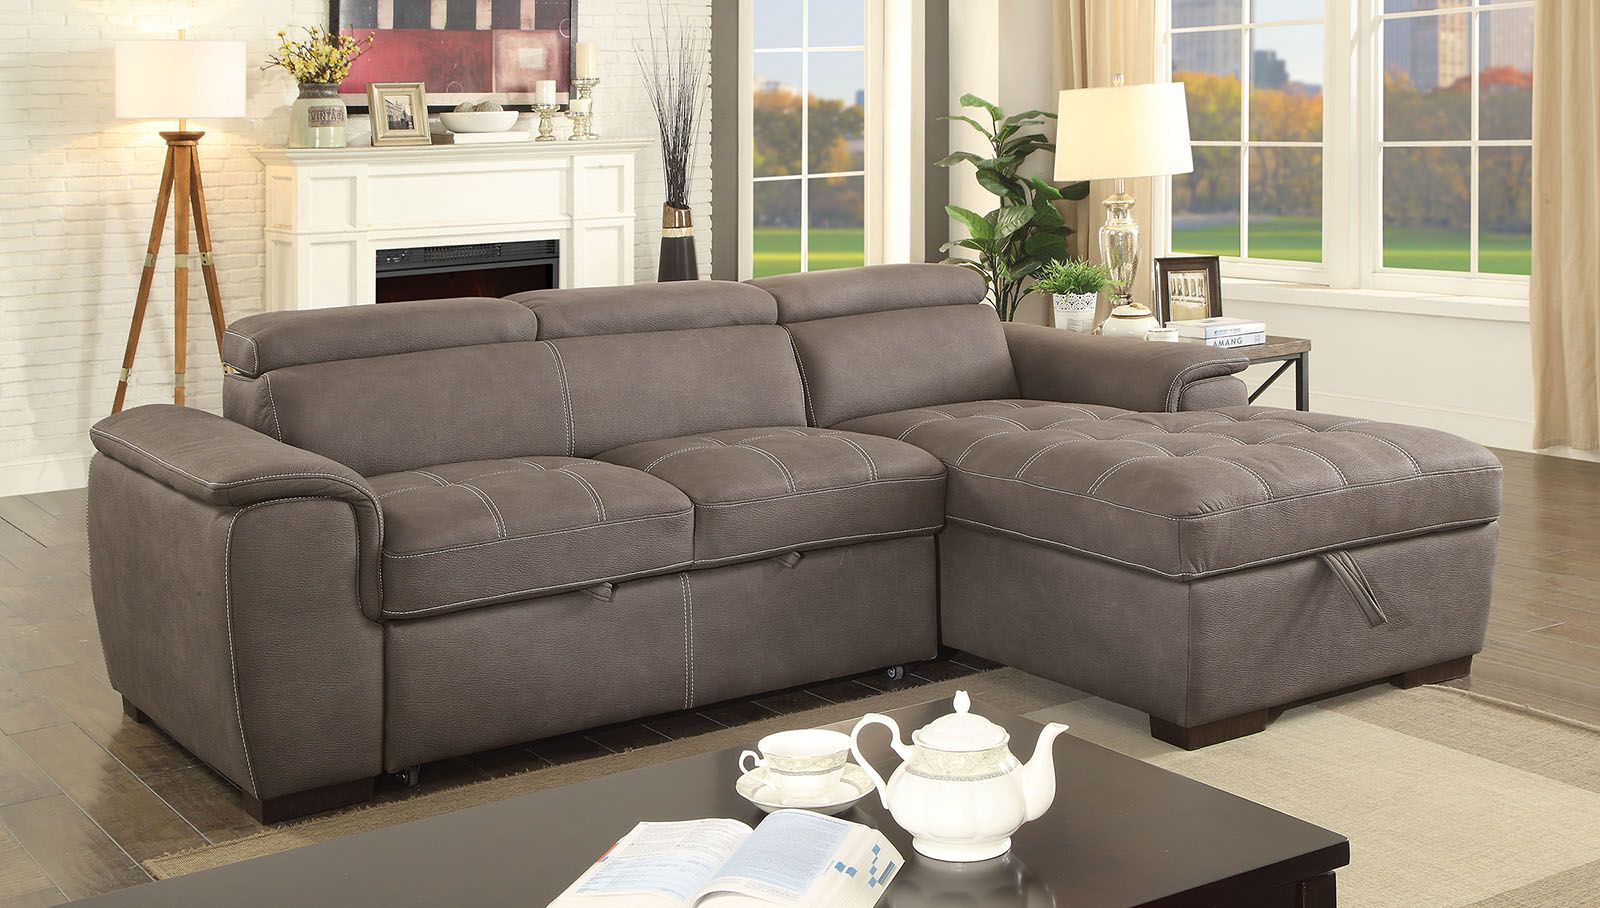 Patty Contemporary Sectional Storage Sleeper Sofa, Ash With Regard To Sectional Sofas With Storage (View 1 of 15)